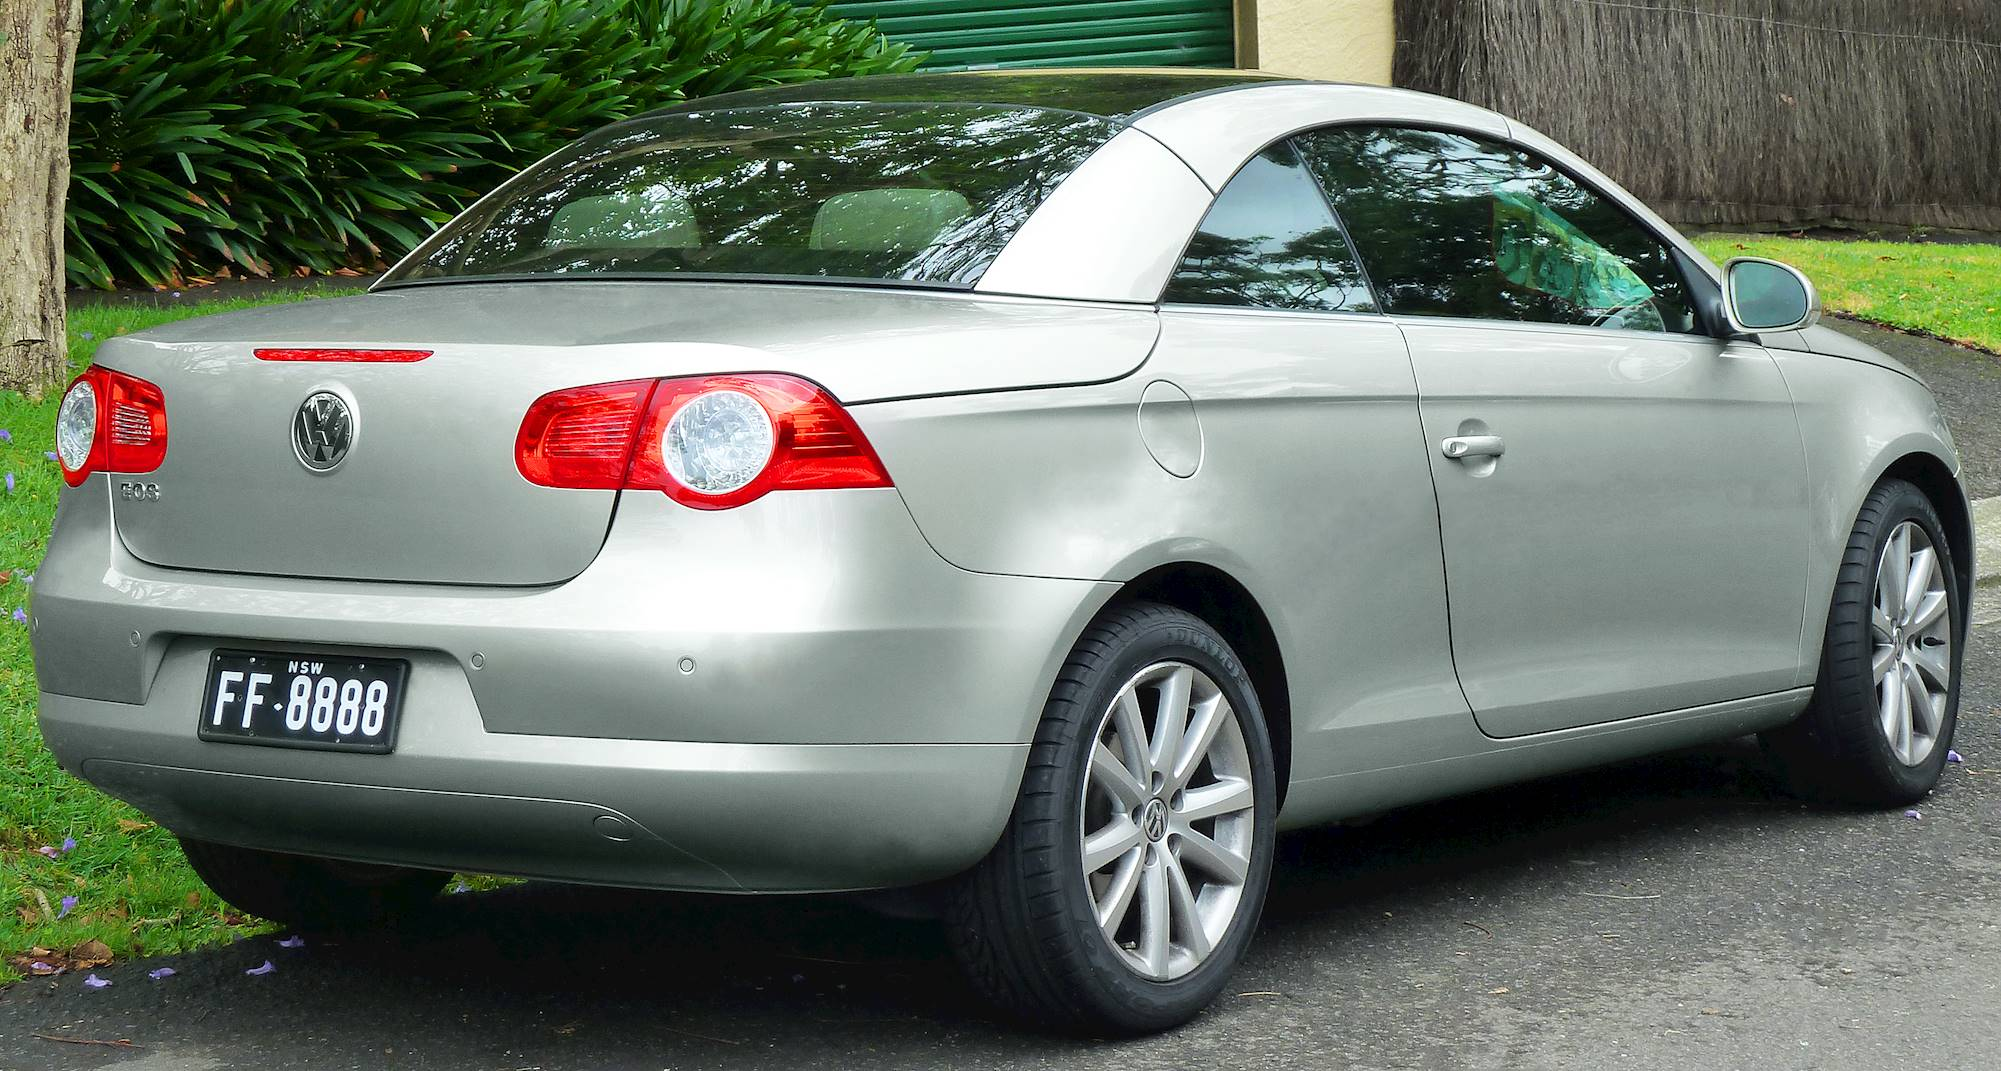 2008 Volkswagen Eos Vr6 Convertible 3 2l V6 Automated Manual